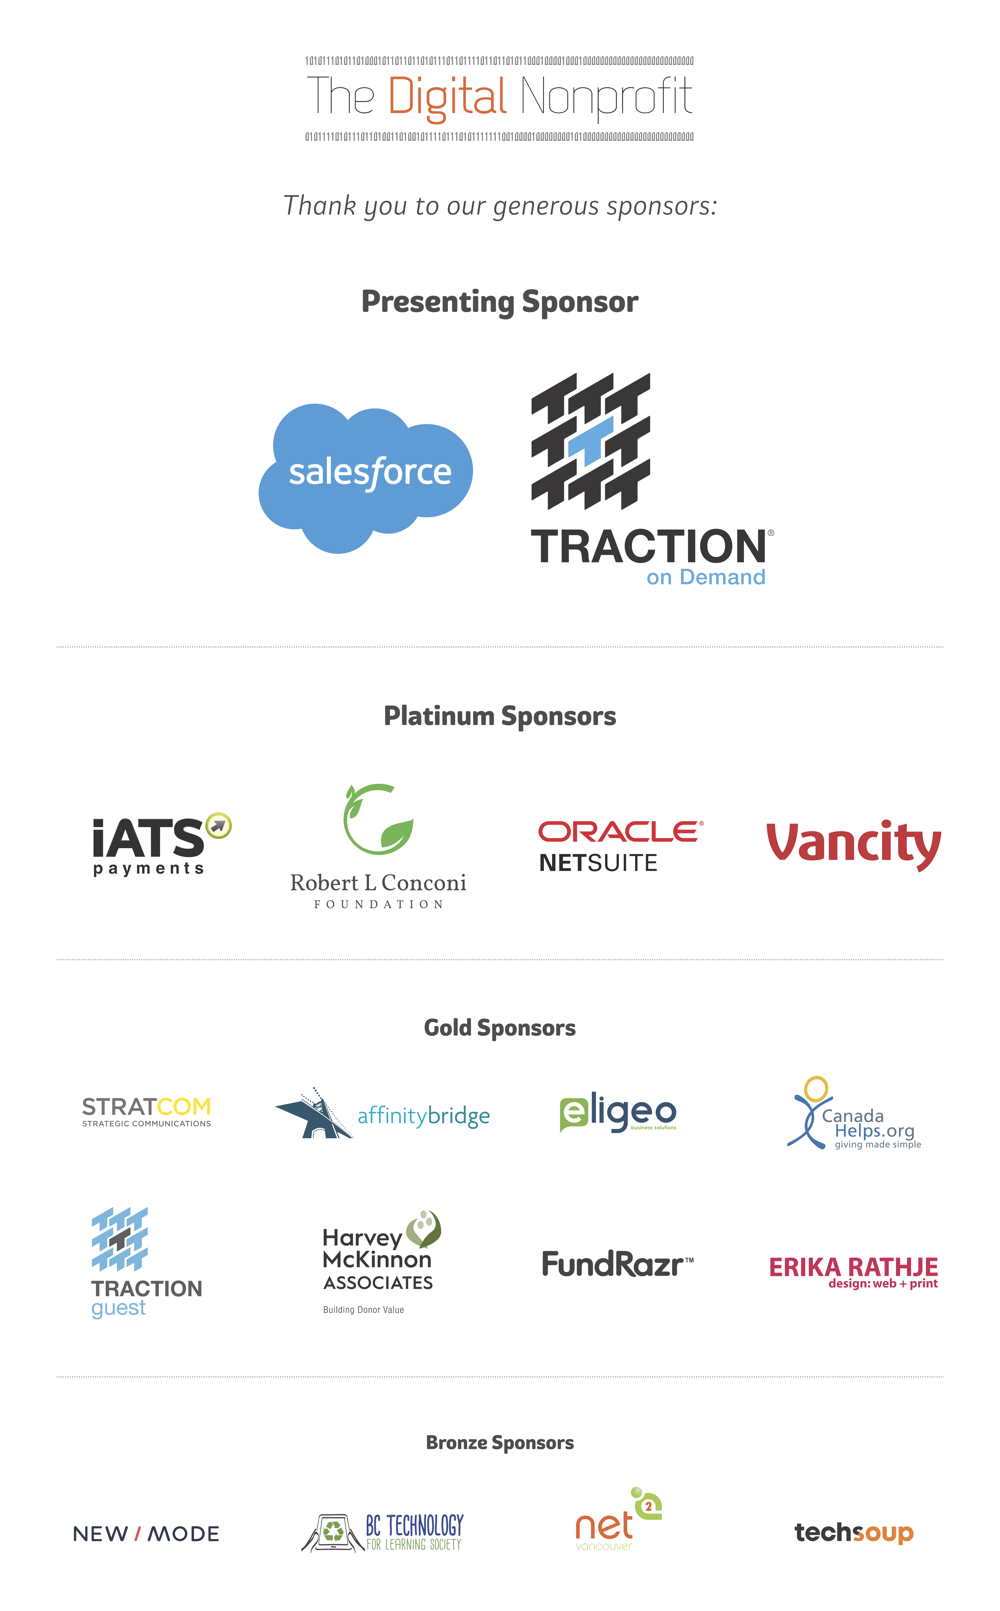 The Digital Nonprofit sponsors